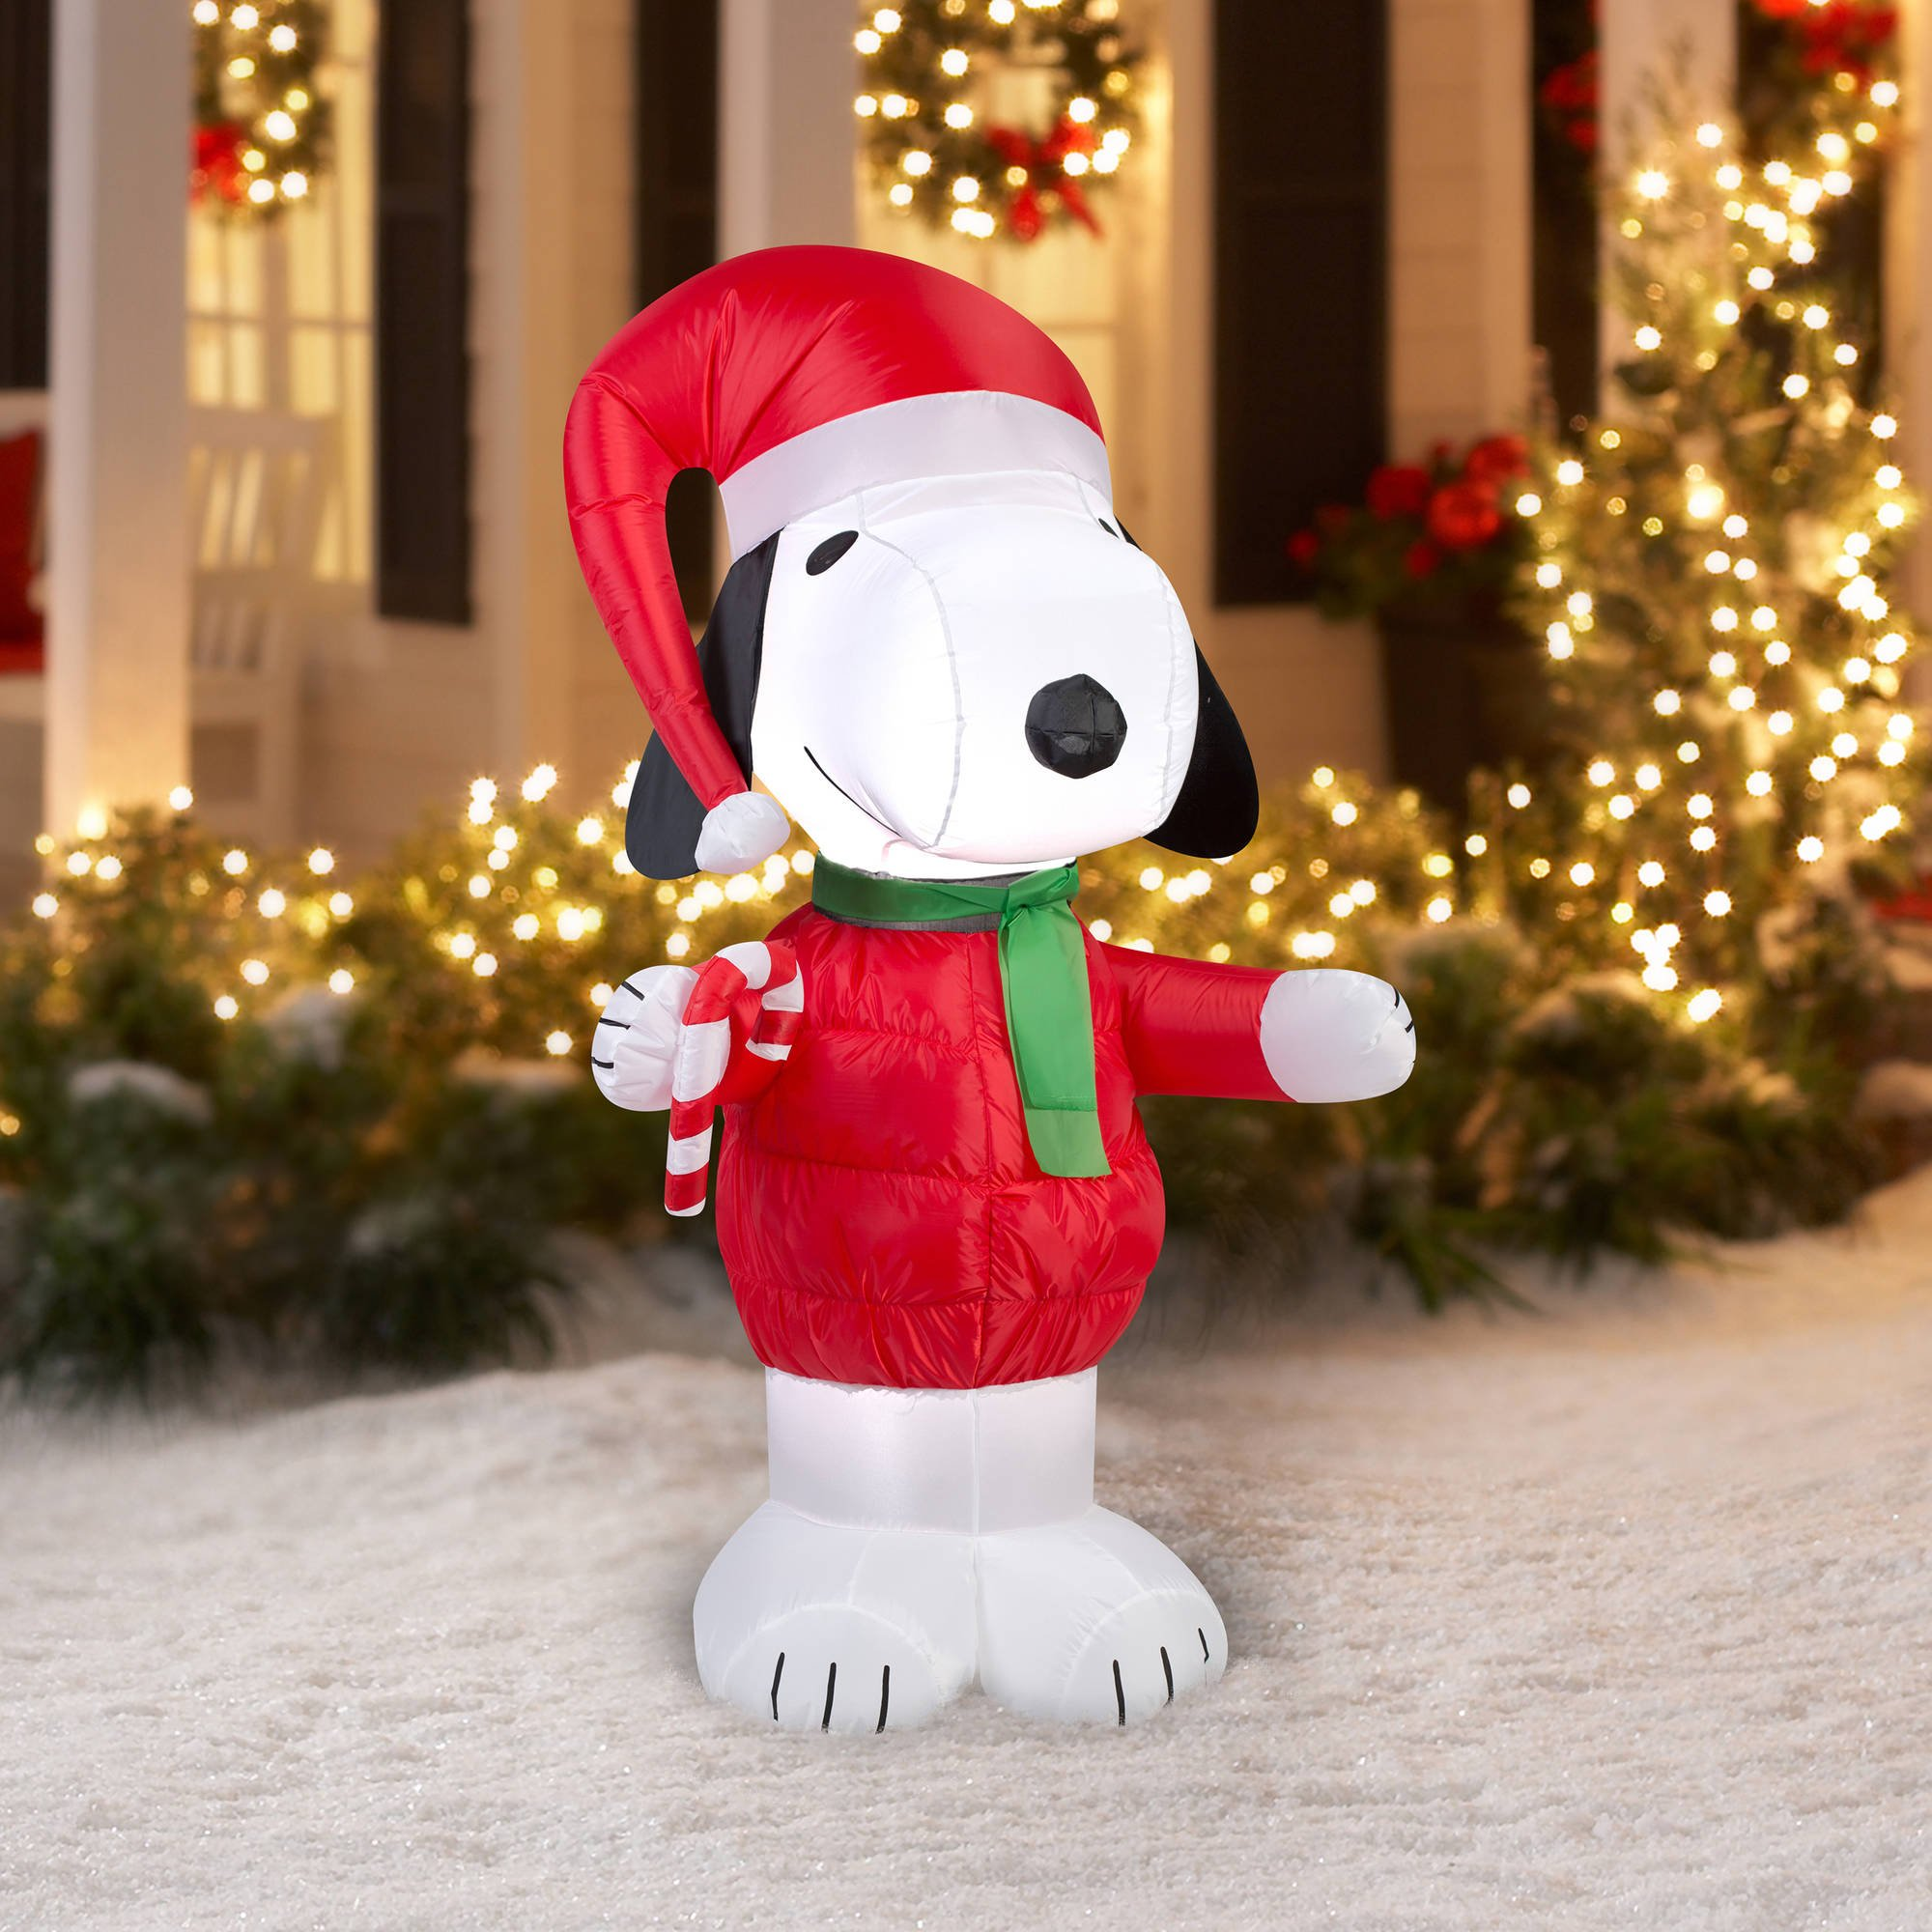 snoopy inflatable christmas yard decorations - Cheap Inflatable Christmas Decorations